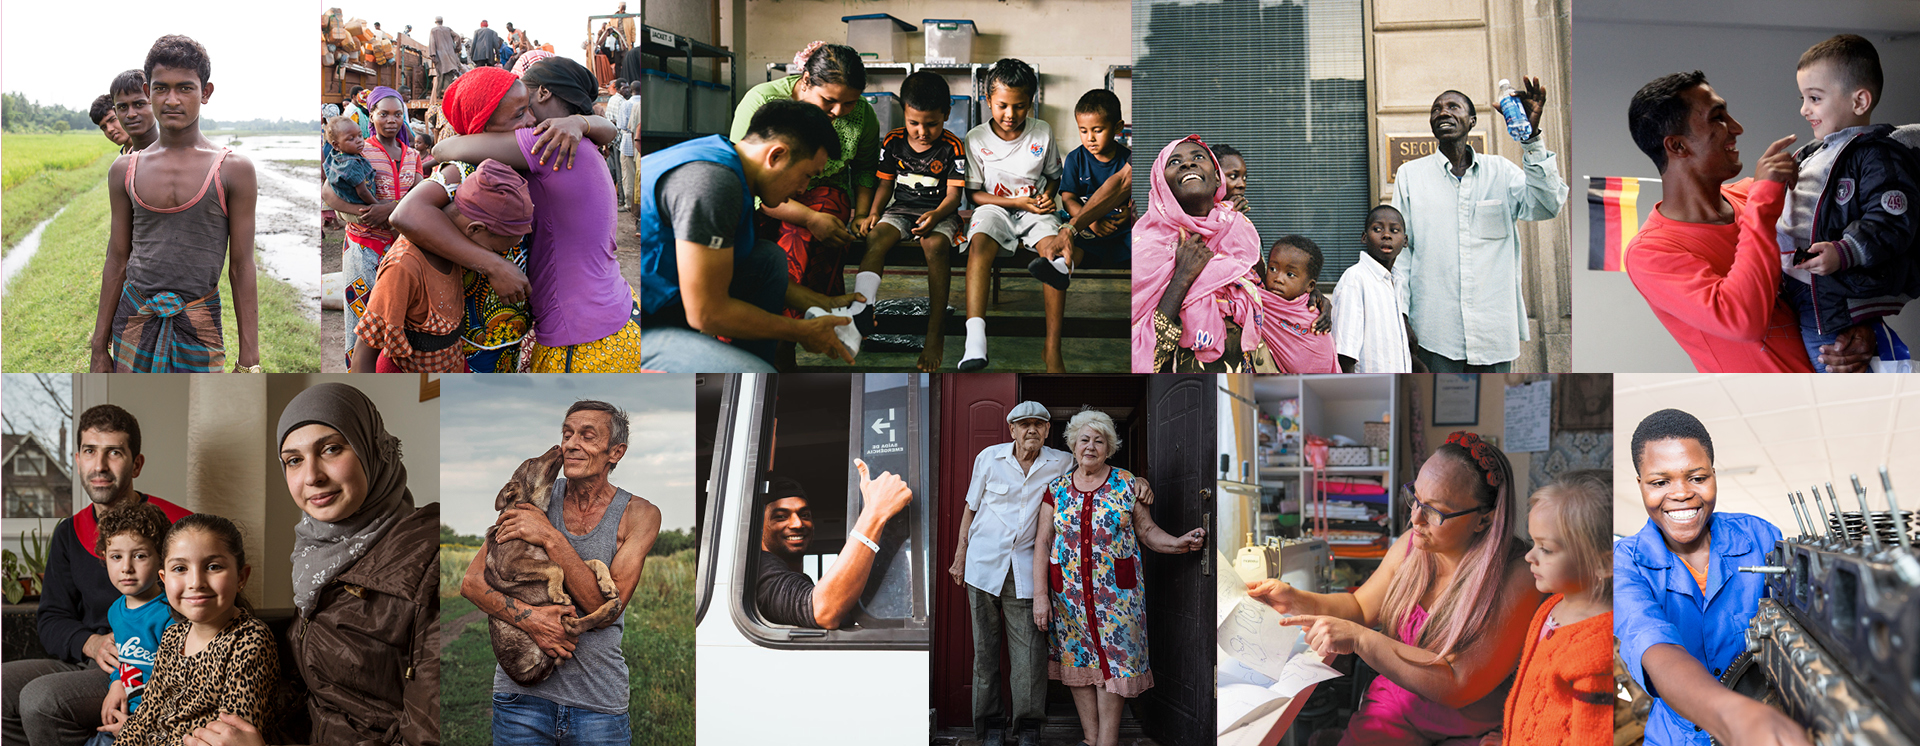 Global Compact for Safe, Orderly and Regular Migration - Report of the Secretary-General